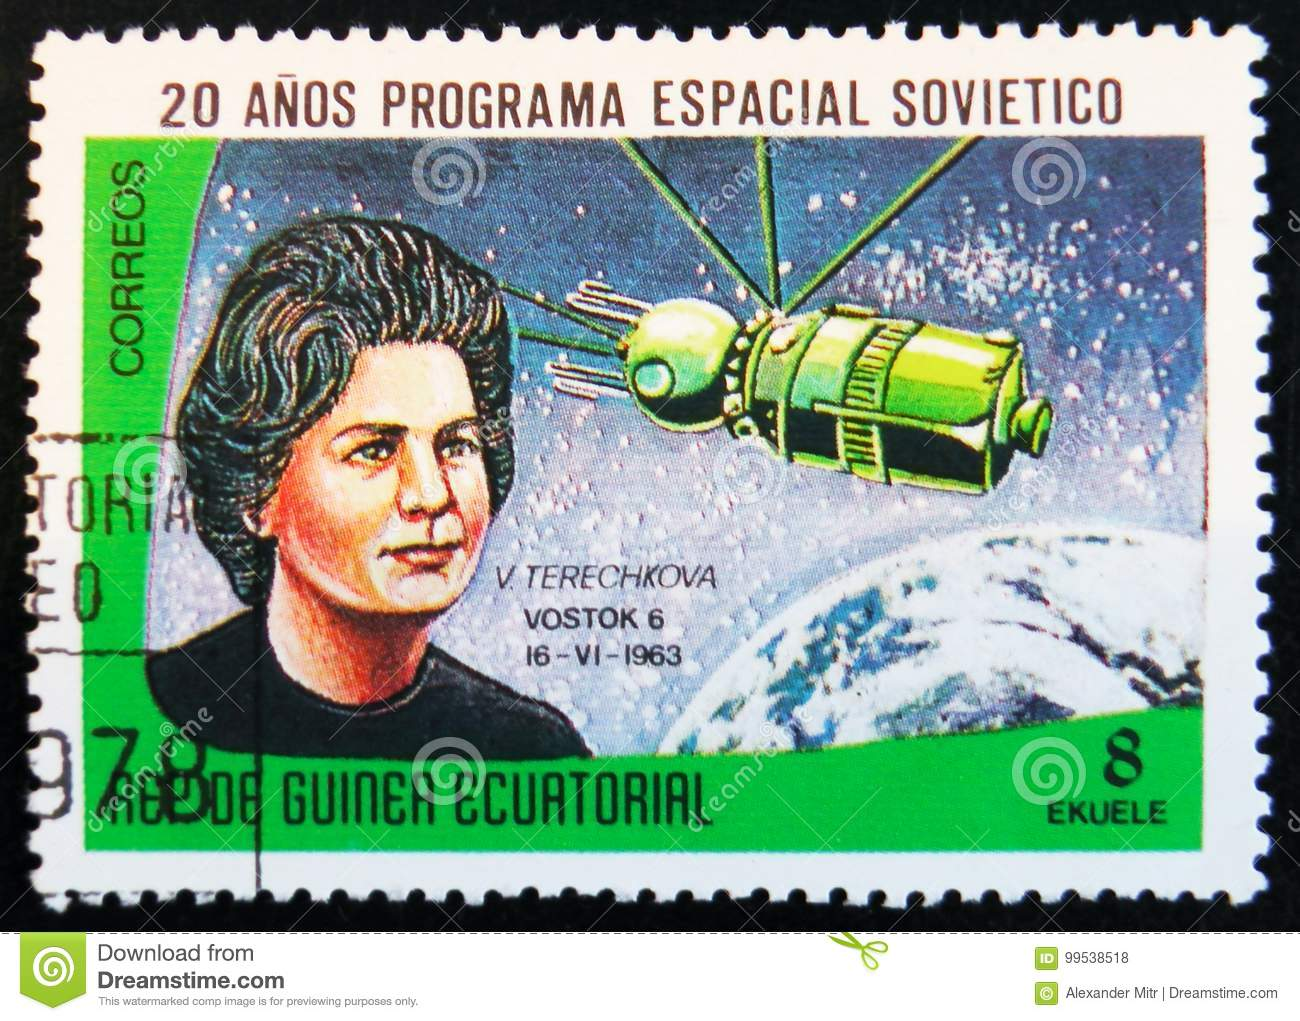 MOSCOW, RUSSIA - APRIL 2, 2017: A stamp printed in Guinea Equatorial shows Vostok 3 and 4 spaceship, 1962, and portraits